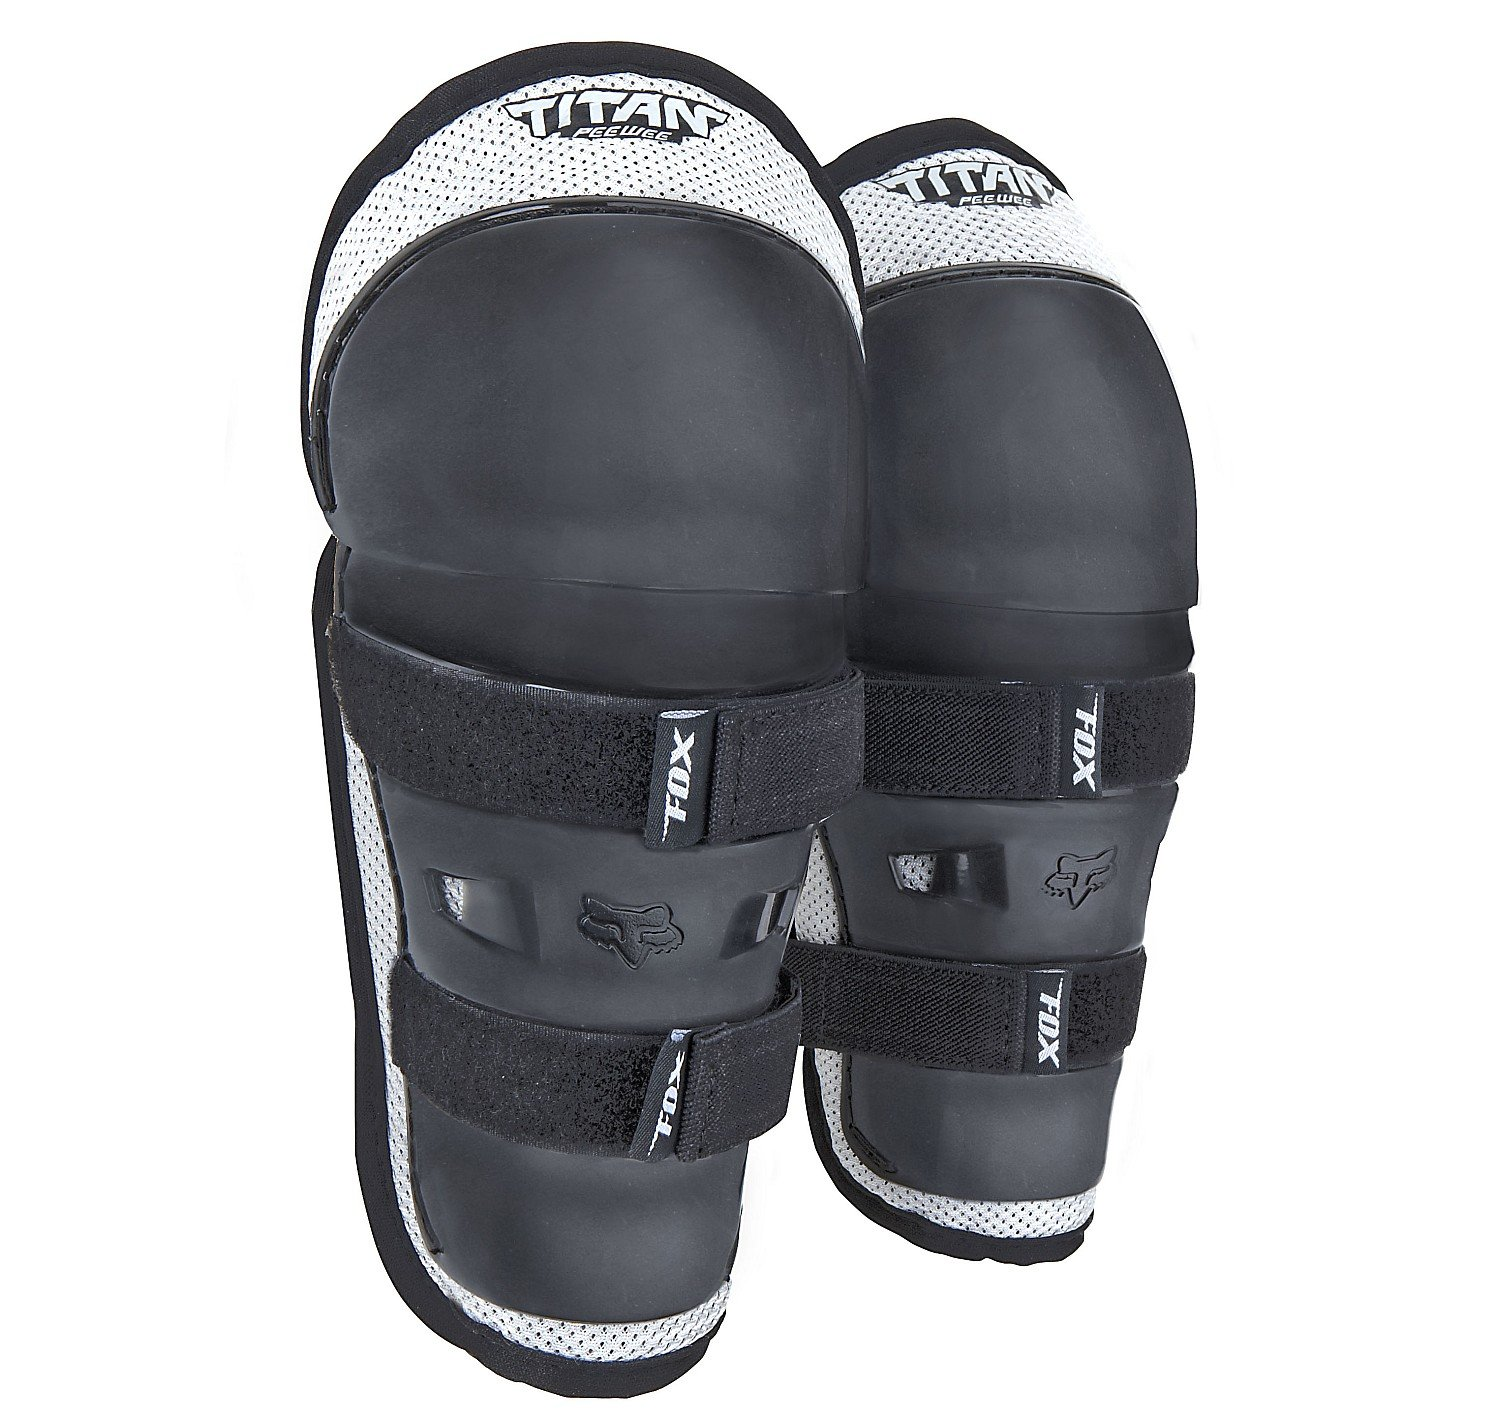 Fox Racing PeeWee Titan Knee/Shin Guards